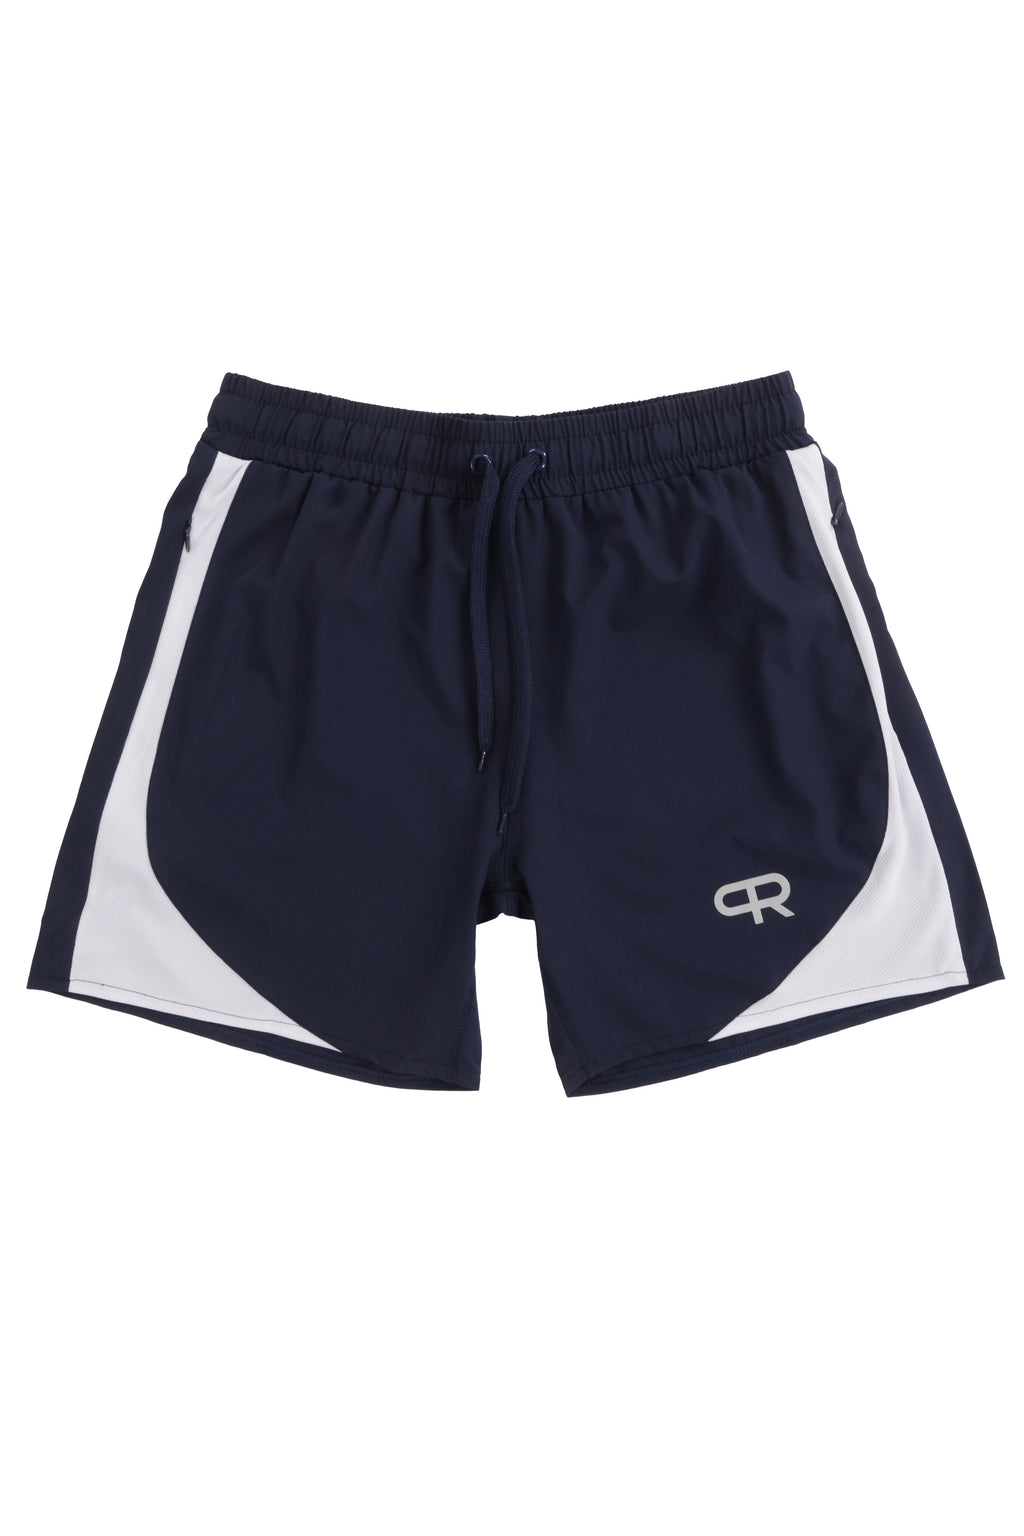 PR Lifting Shorts W/Zipper Pockets - PR102- Navy/White